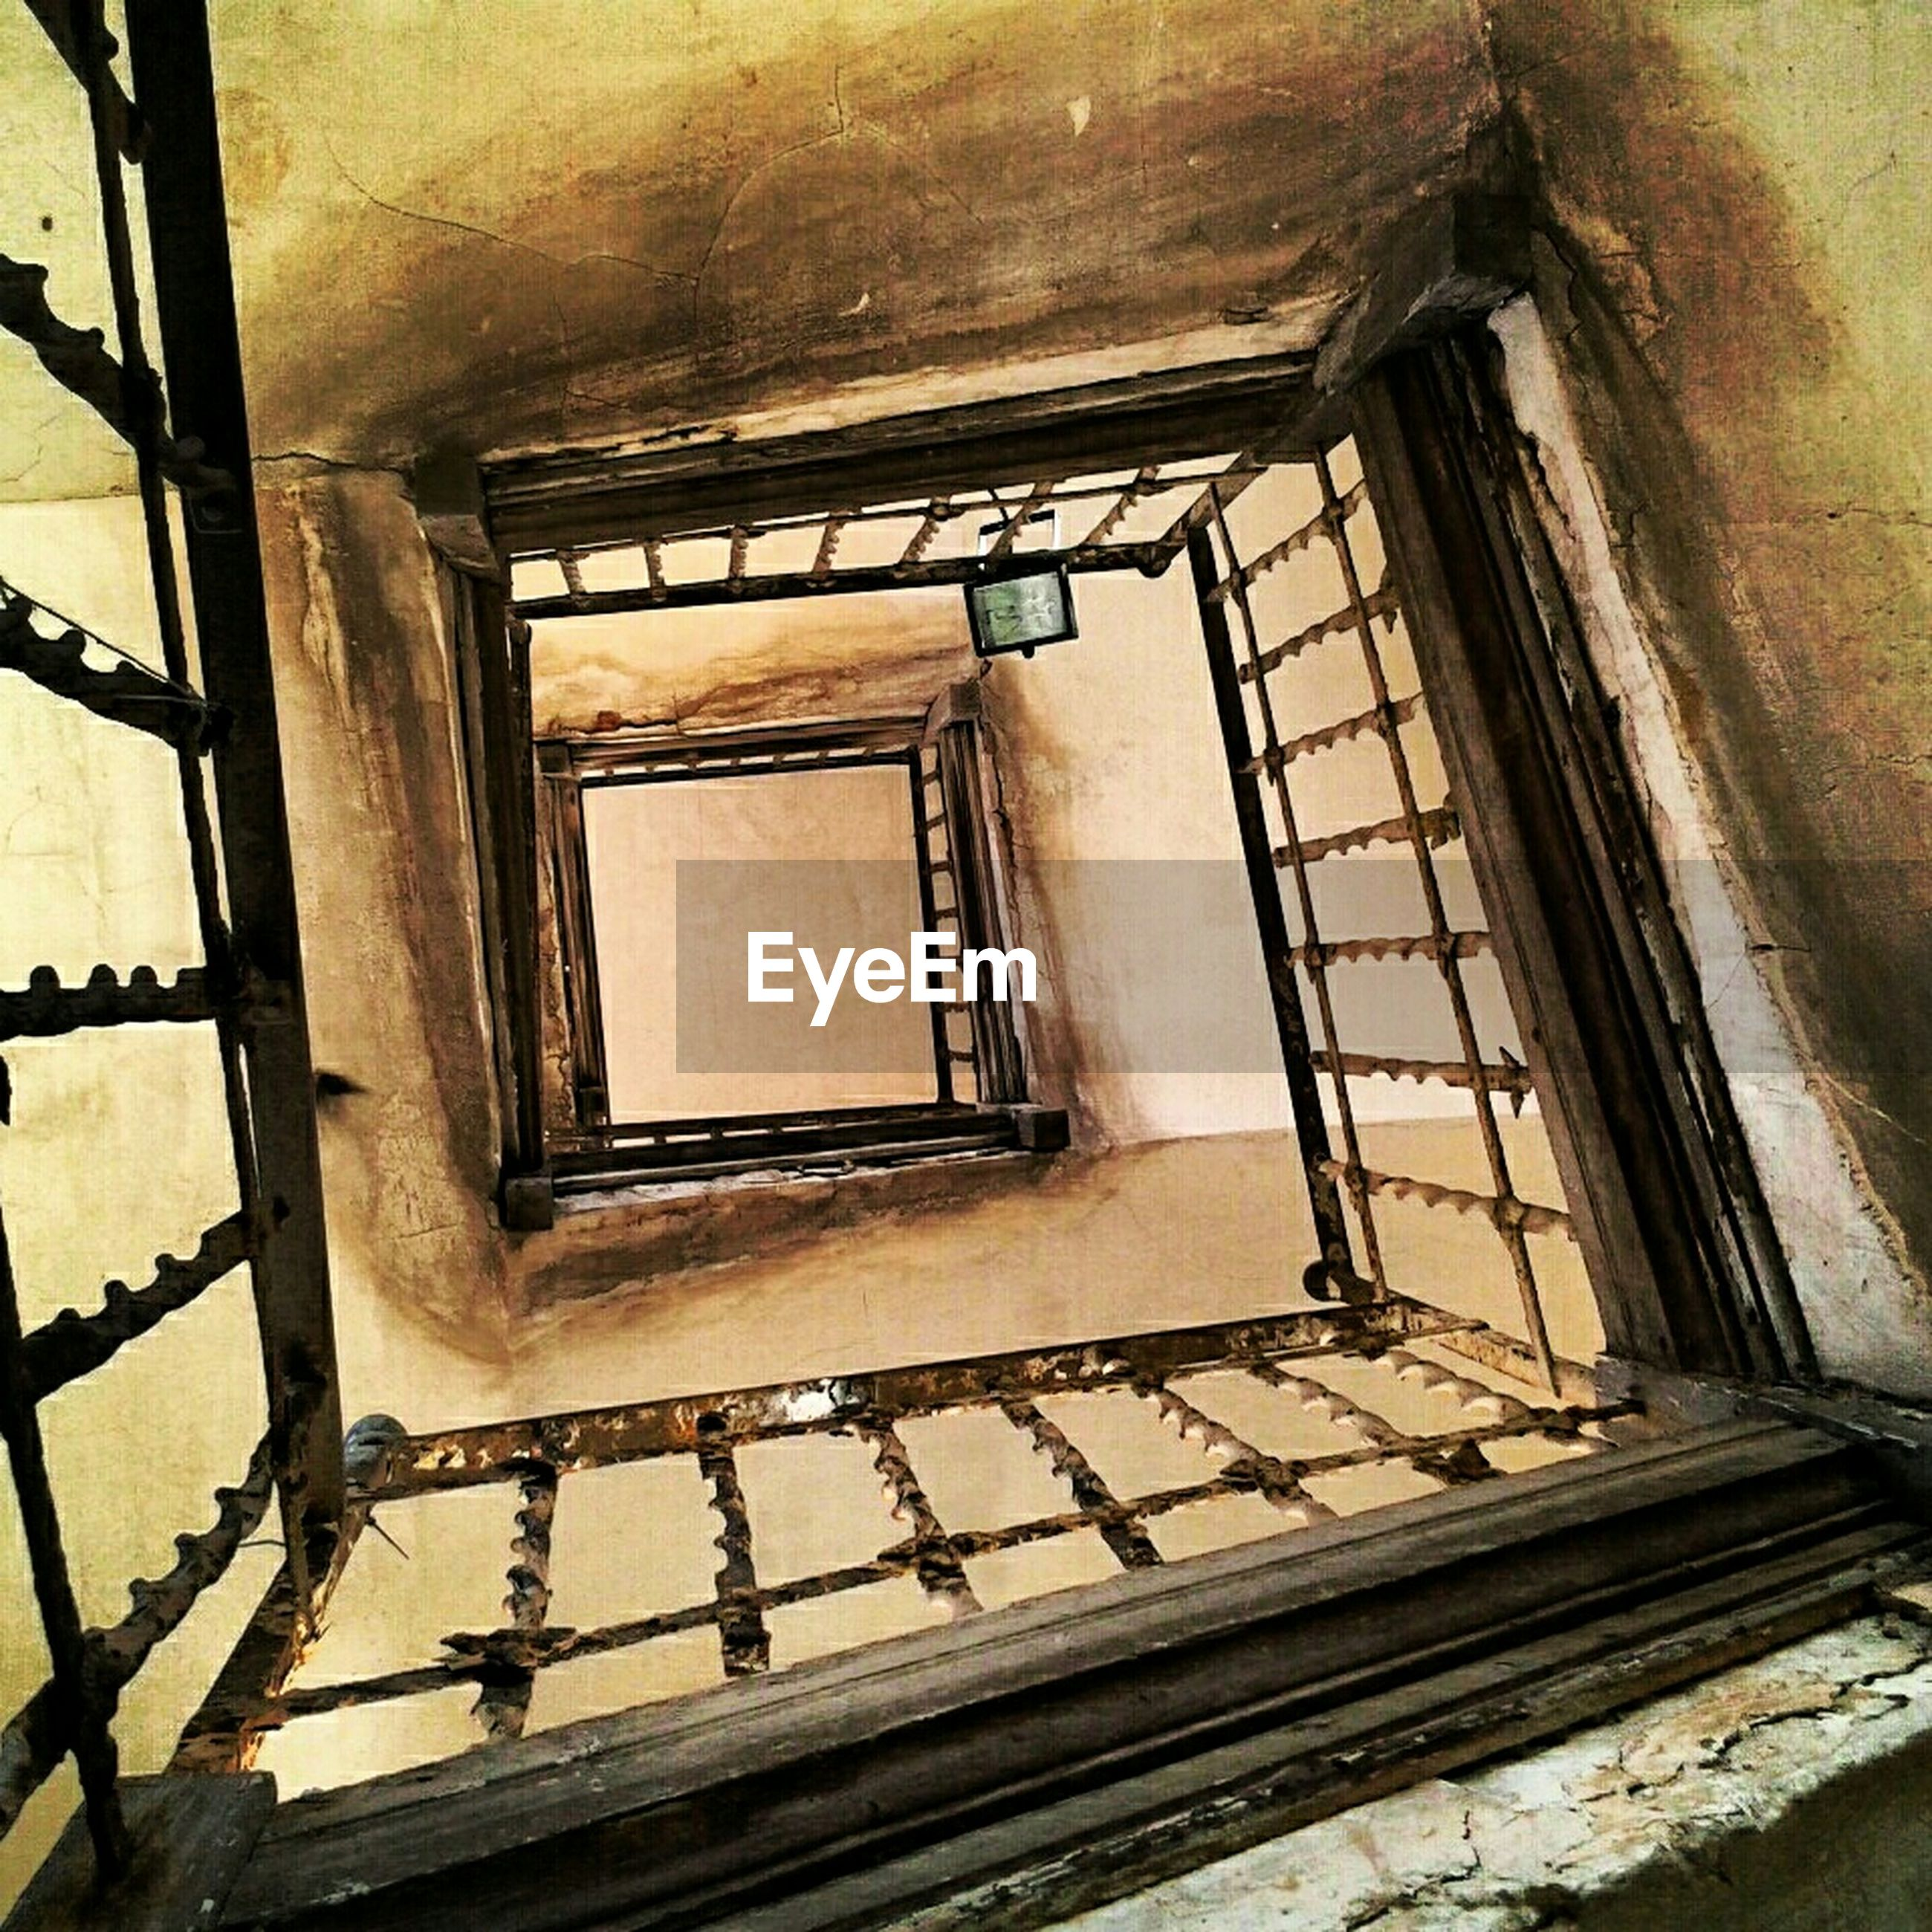 indoors, steps and staircases, staircase, steps, architecture, built structure, railing, window, ceiling, wall - building feature, building, low angle view, no people, house, stairs, home interior, spiral staircase, day, sunlight, glass - material